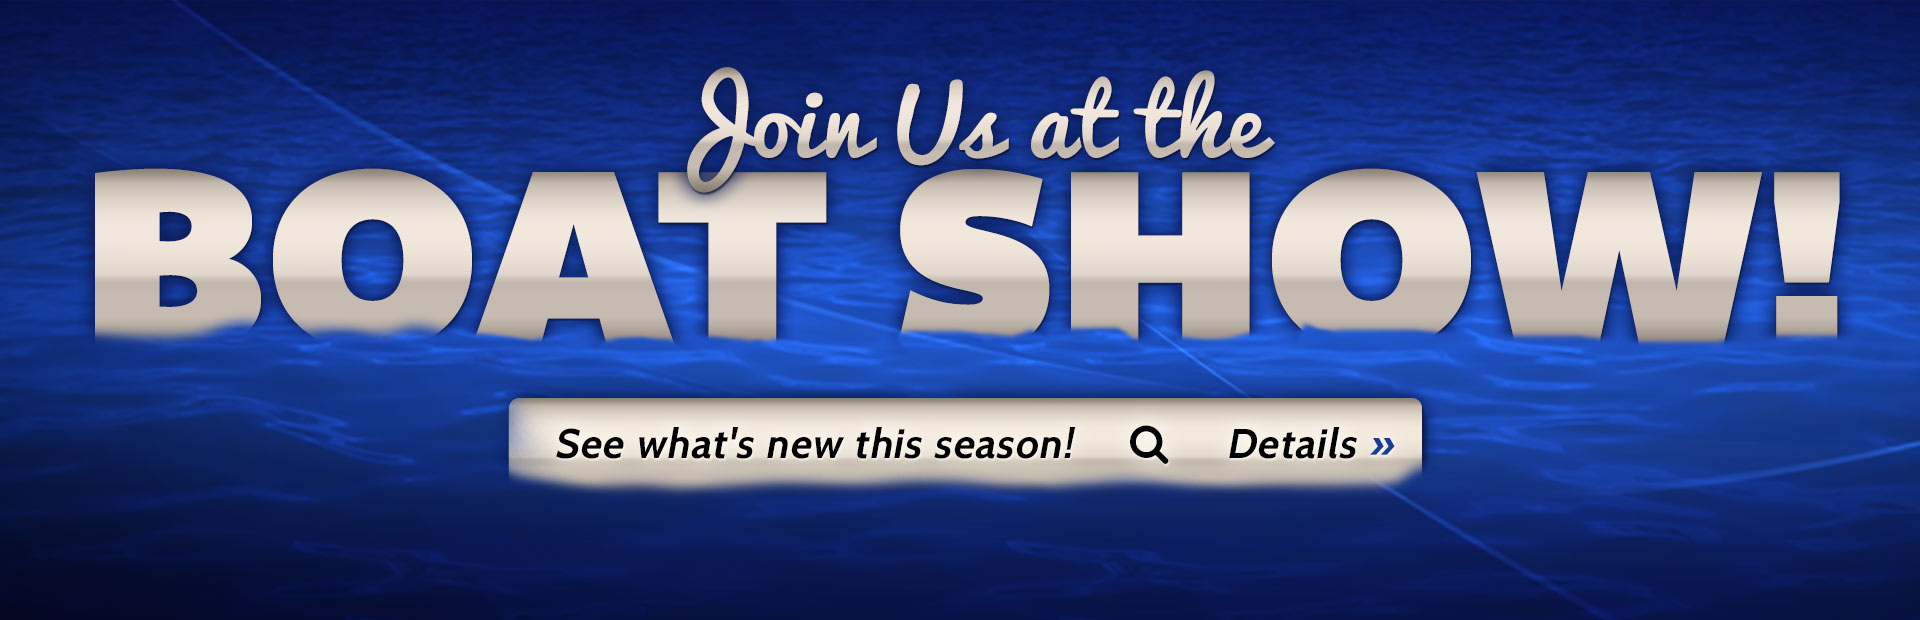 Join us at the boat show! Click here for details.